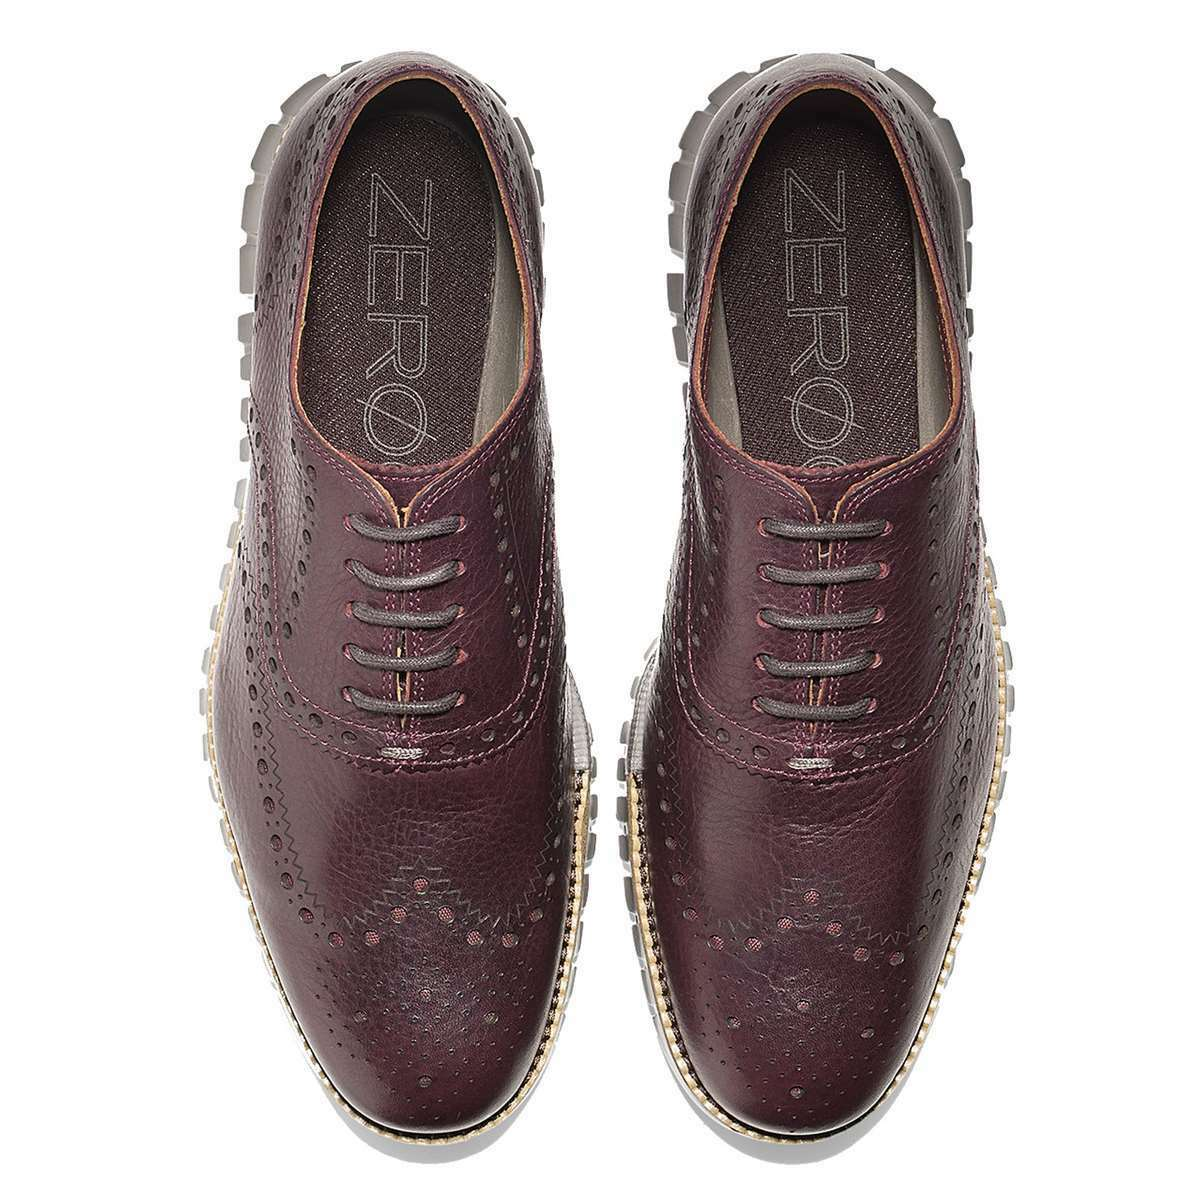 Cole Formal Haan Uomo Dress Formal Cole /Casual Shoes Zerogrand Wingtip Pelle Oxford Shoes bed0aa